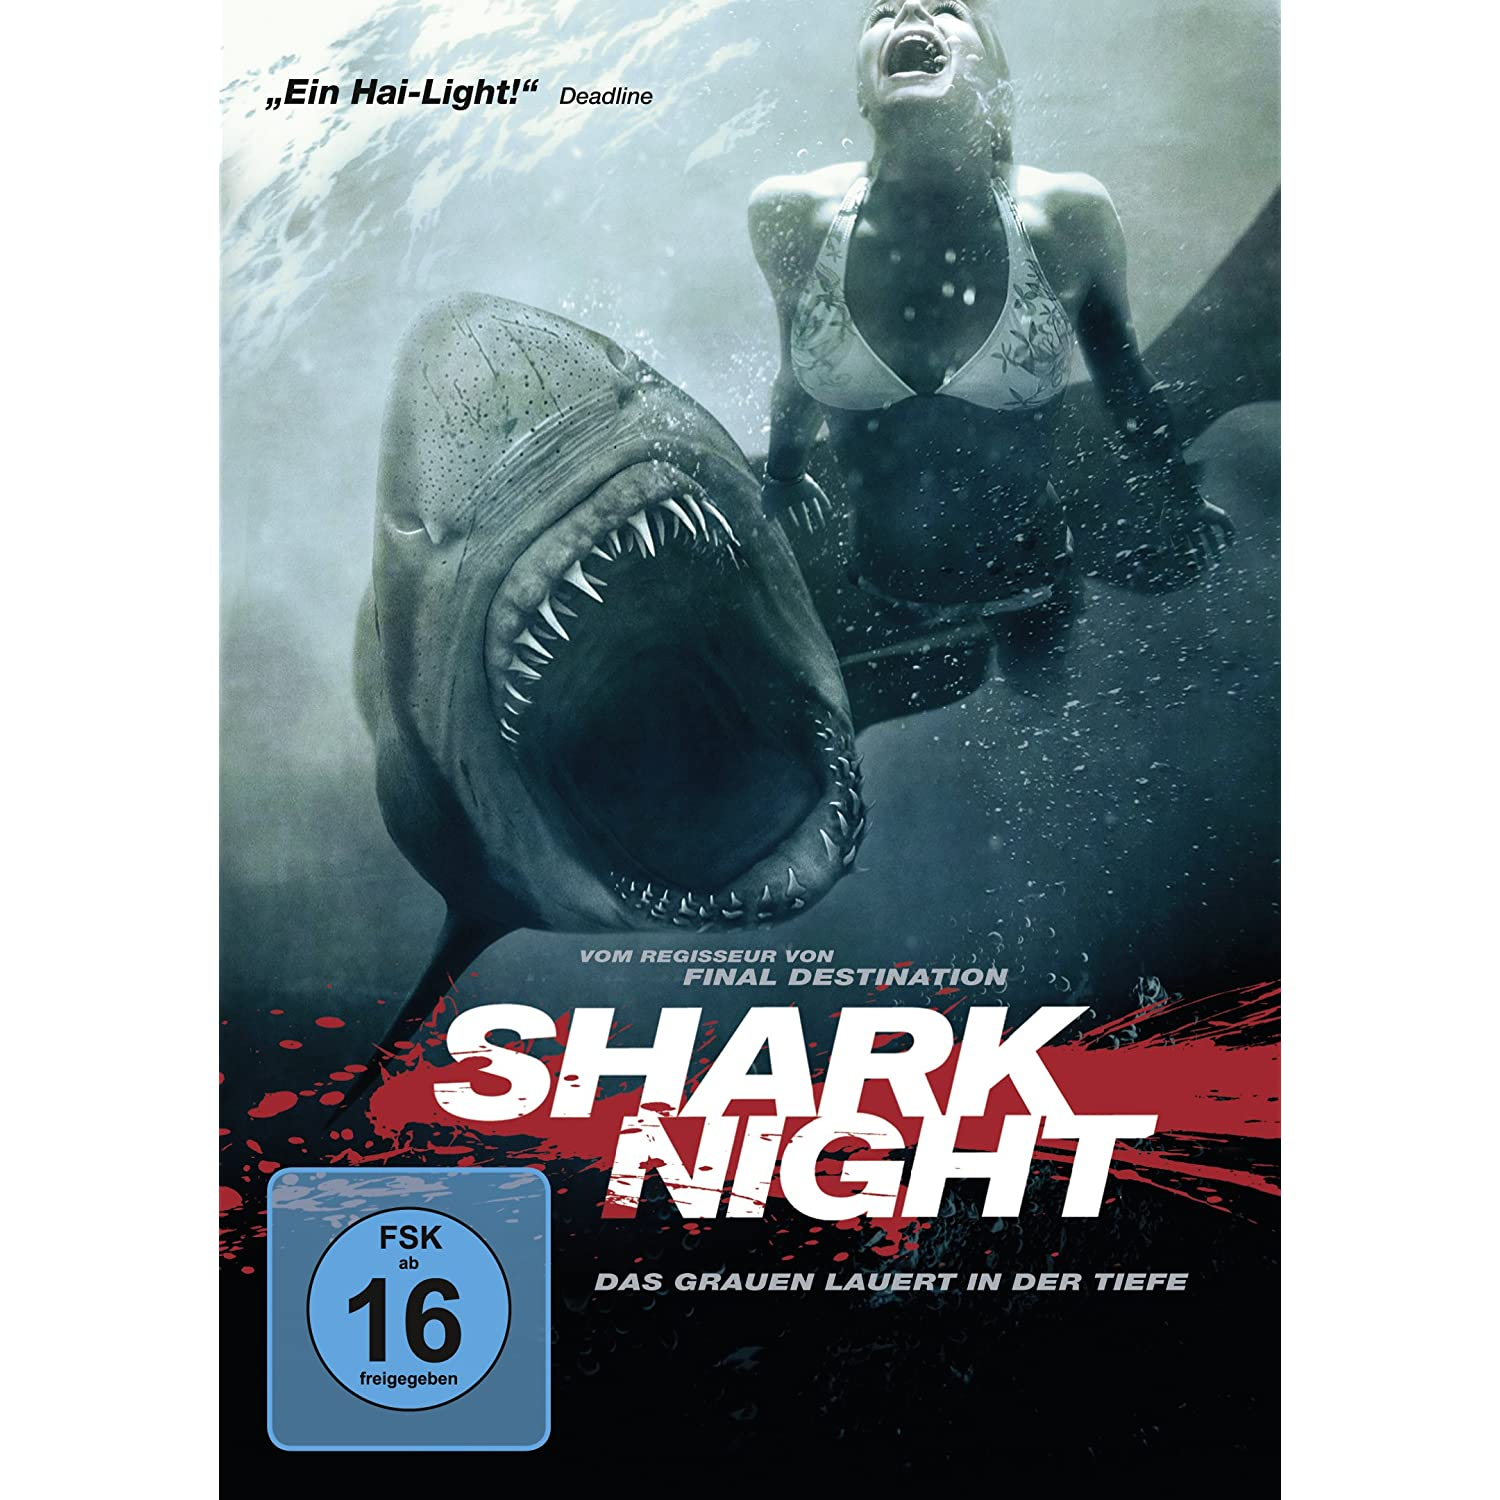 Quelle: http://www.amazon.de/Shark-Night-Sara-Paxton/dp/B006H2WO7C/ref=sr_1_sc_1?ie=UTF8&qid=1343843775&sr=8-1-spell